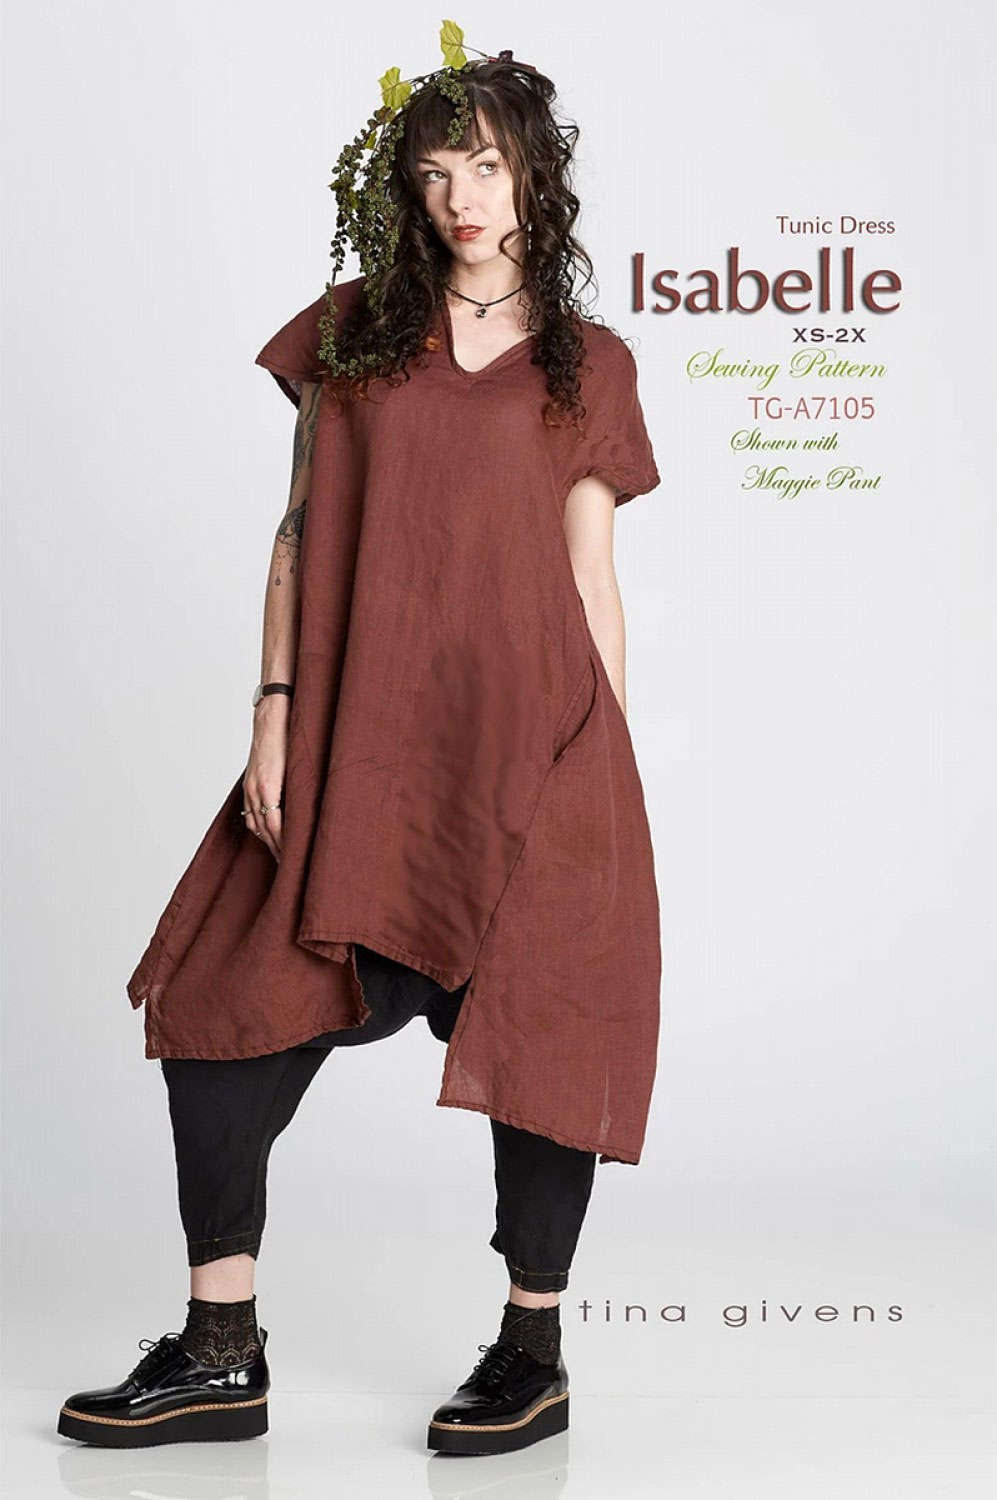 Isabelle-Tunic-Dress-sewing-pattern-from-Tina-Givens-front